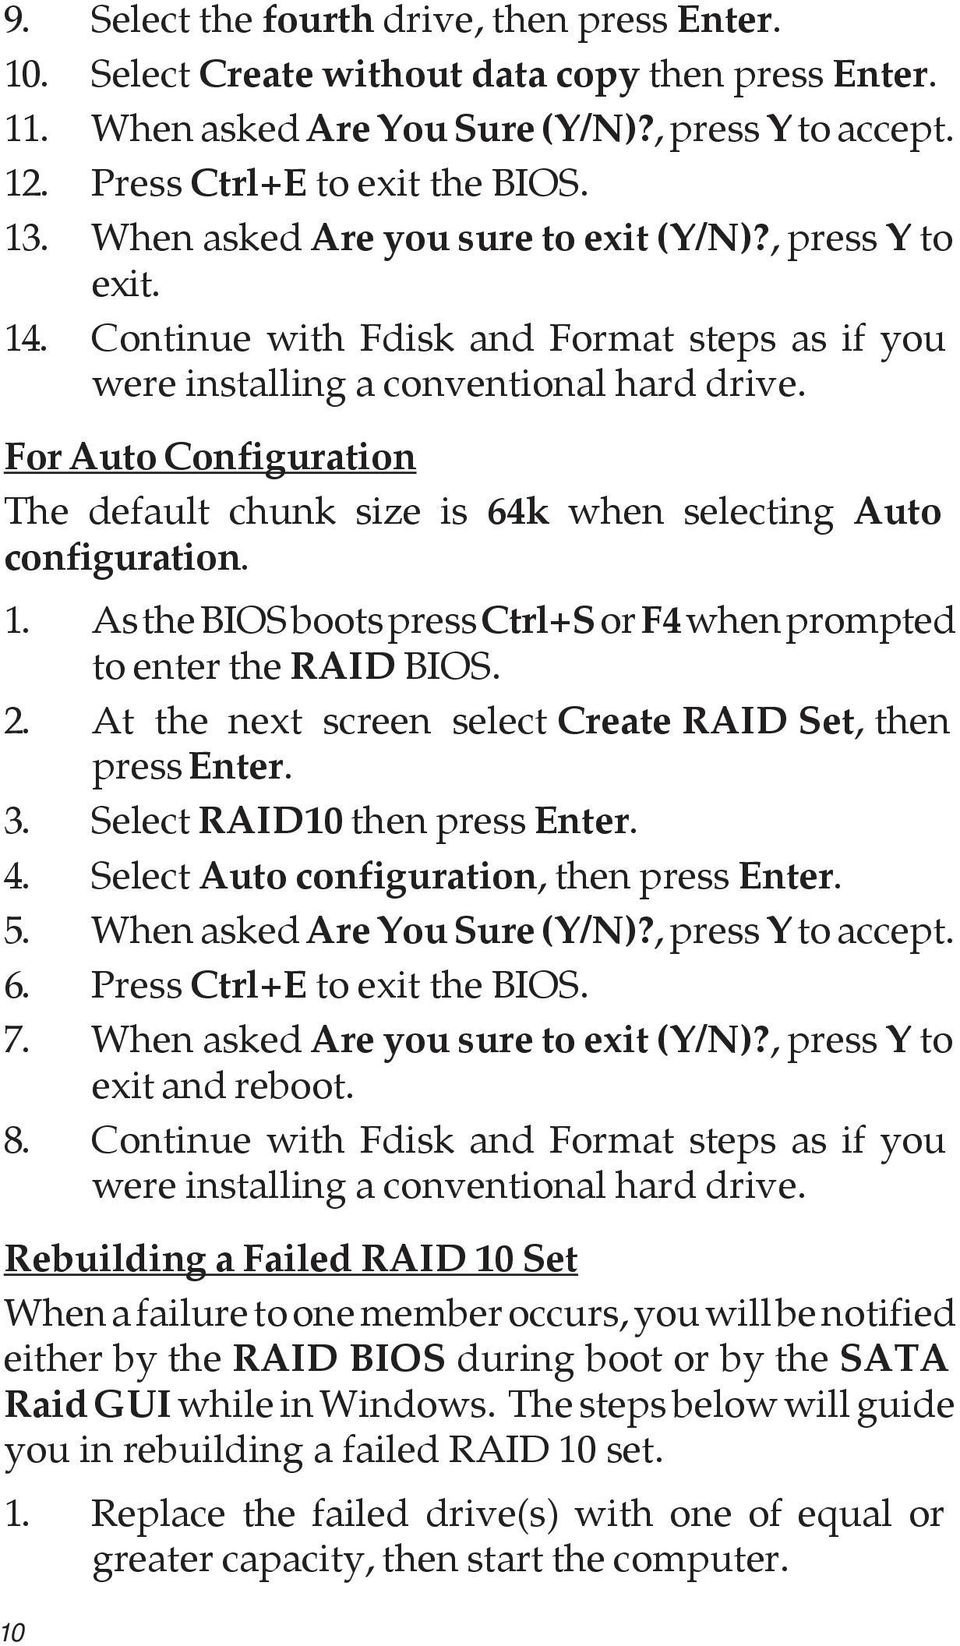 For Auto Configuration The default chunk size is 64k when selecting Auto configuration. 1. As the BIOS boots press Ctrl+S or F4 when prompted to enter the RAID BIOS. 2.